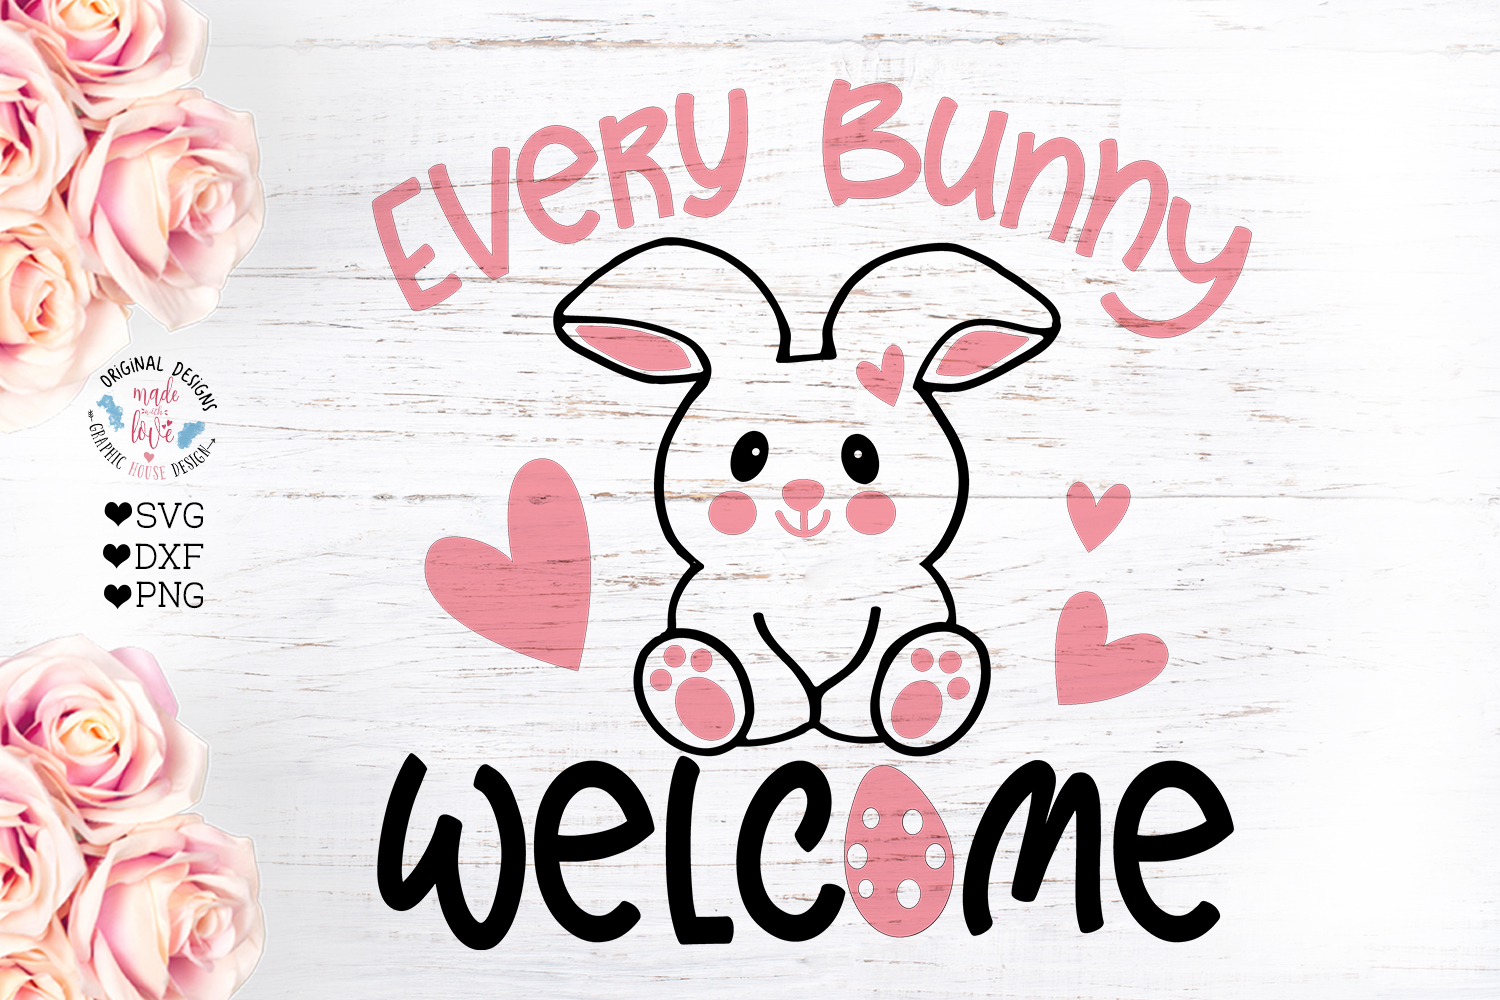 Every Bunny Welcome - Easter Cut File example image 1